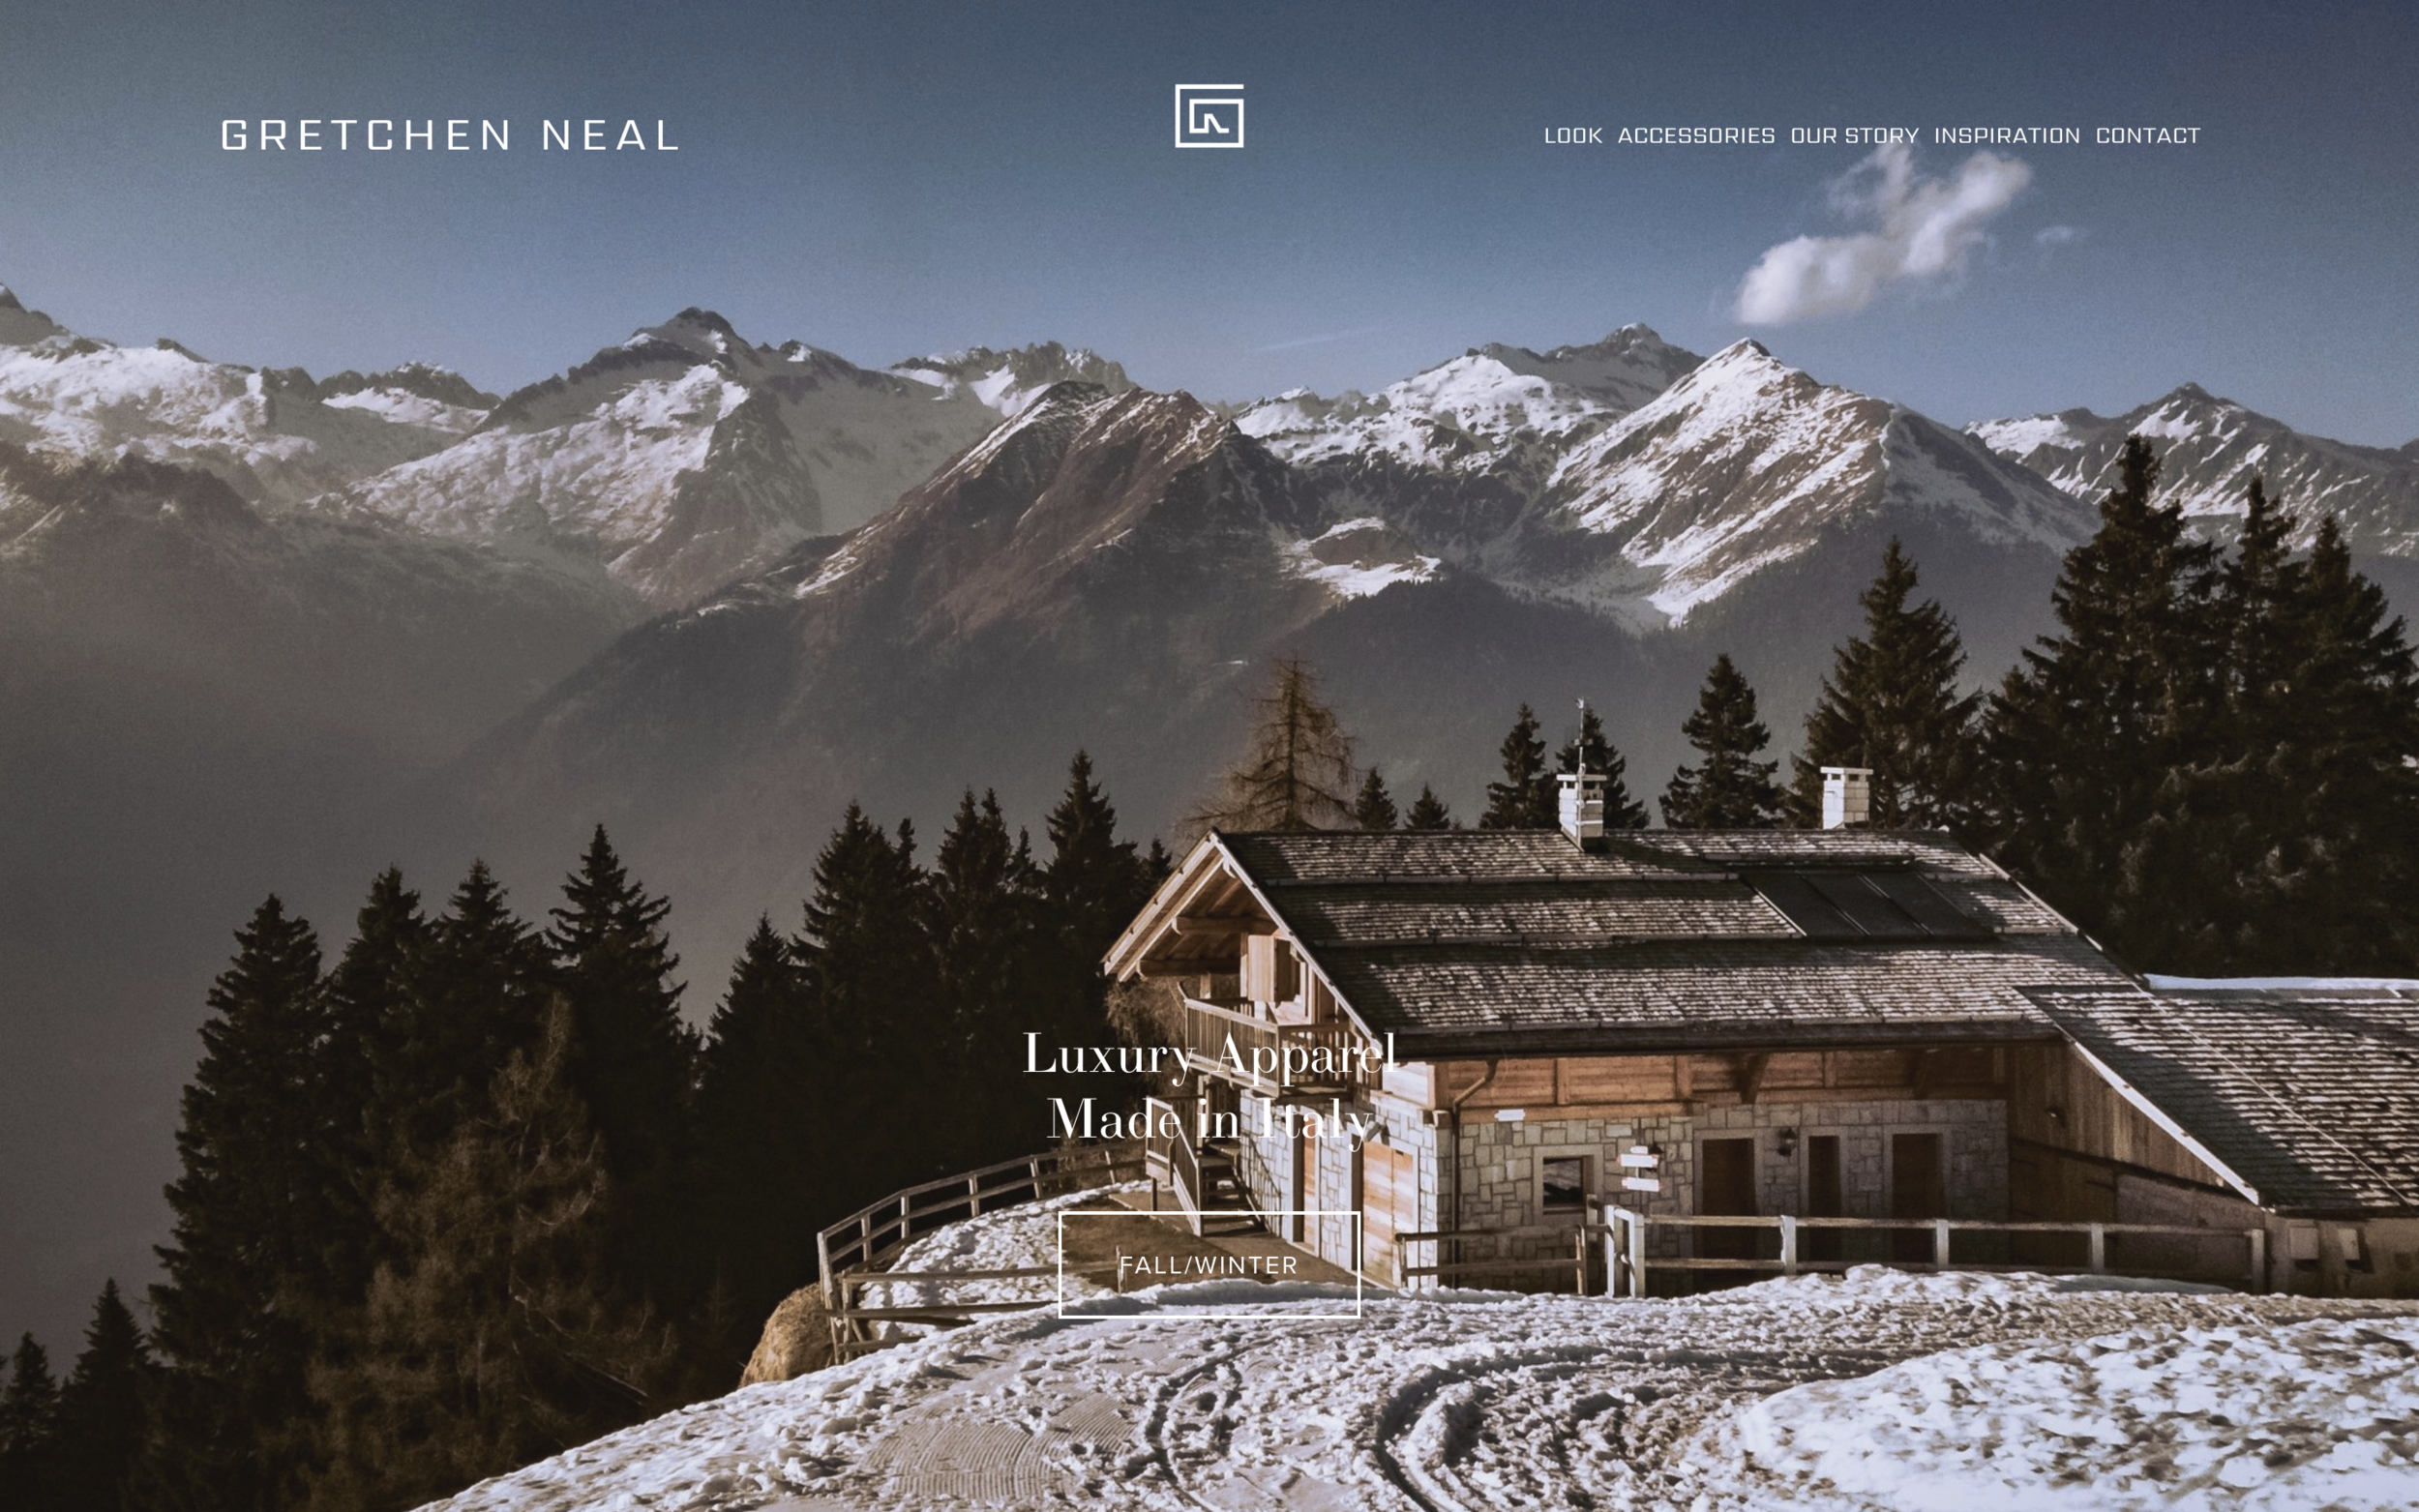 gretchennealdesigns.com - Luxury eCommerce Website Built On SquarespaceWhen selling a luxury, hugh end product, a website needs to match the feel of the product. This Squarespace ecommerce website is beautifully design, easy to navigate and supports their brand.